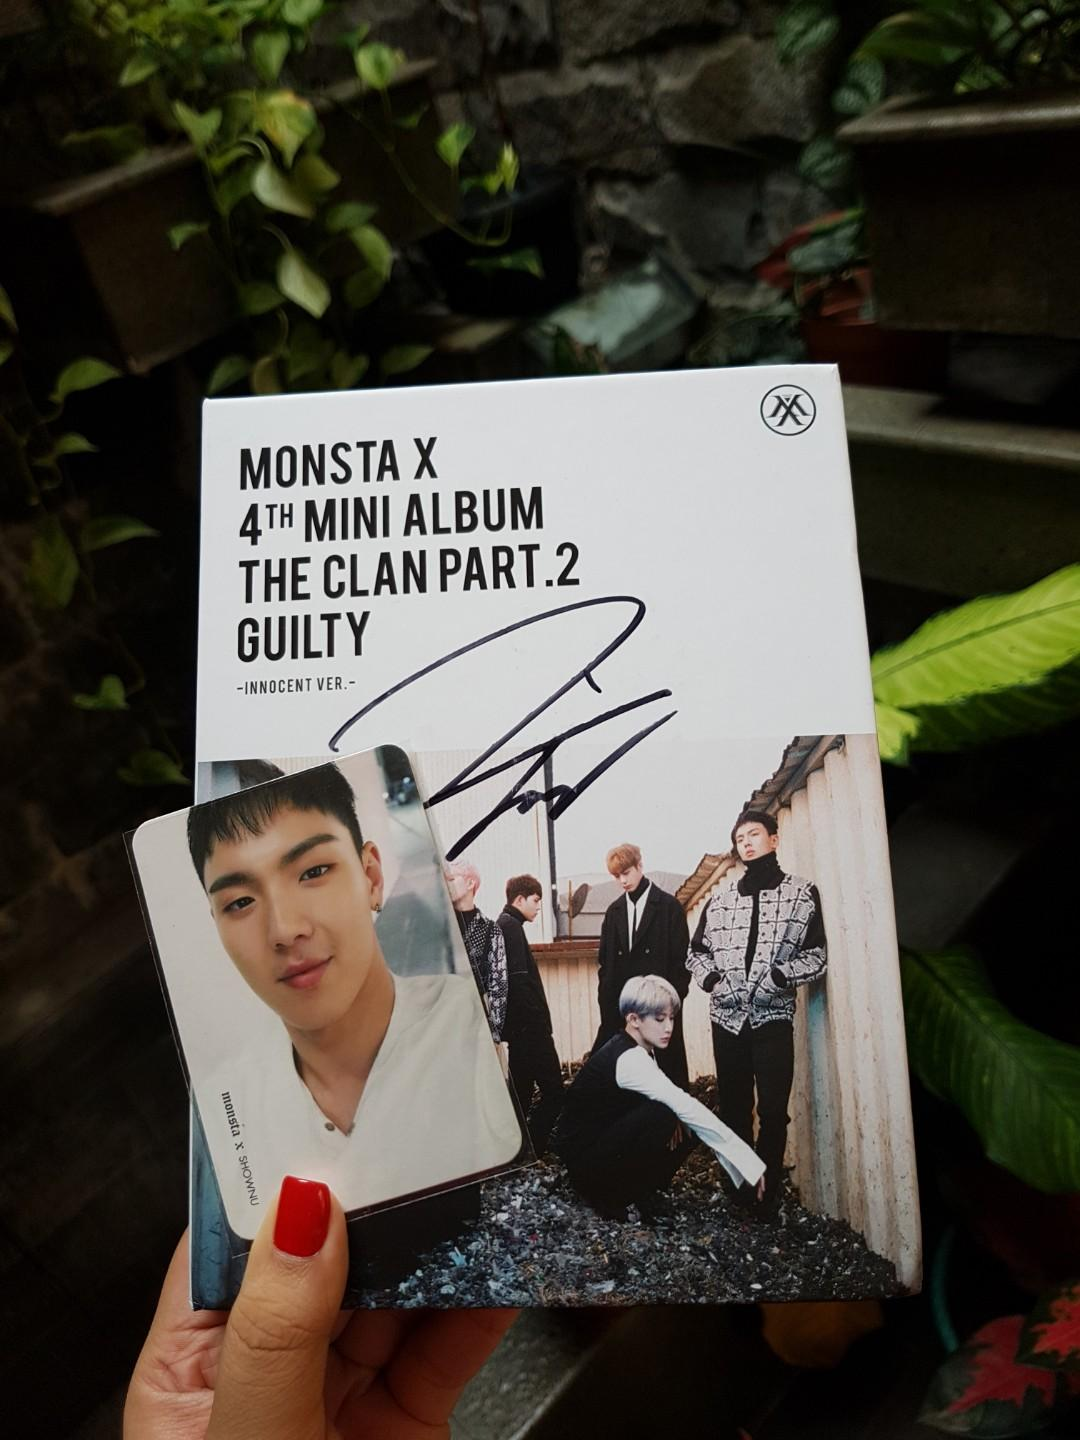 Album Monsta X The Clan Part.2 Guilty: Innocent Ver (Jooheon Sign)